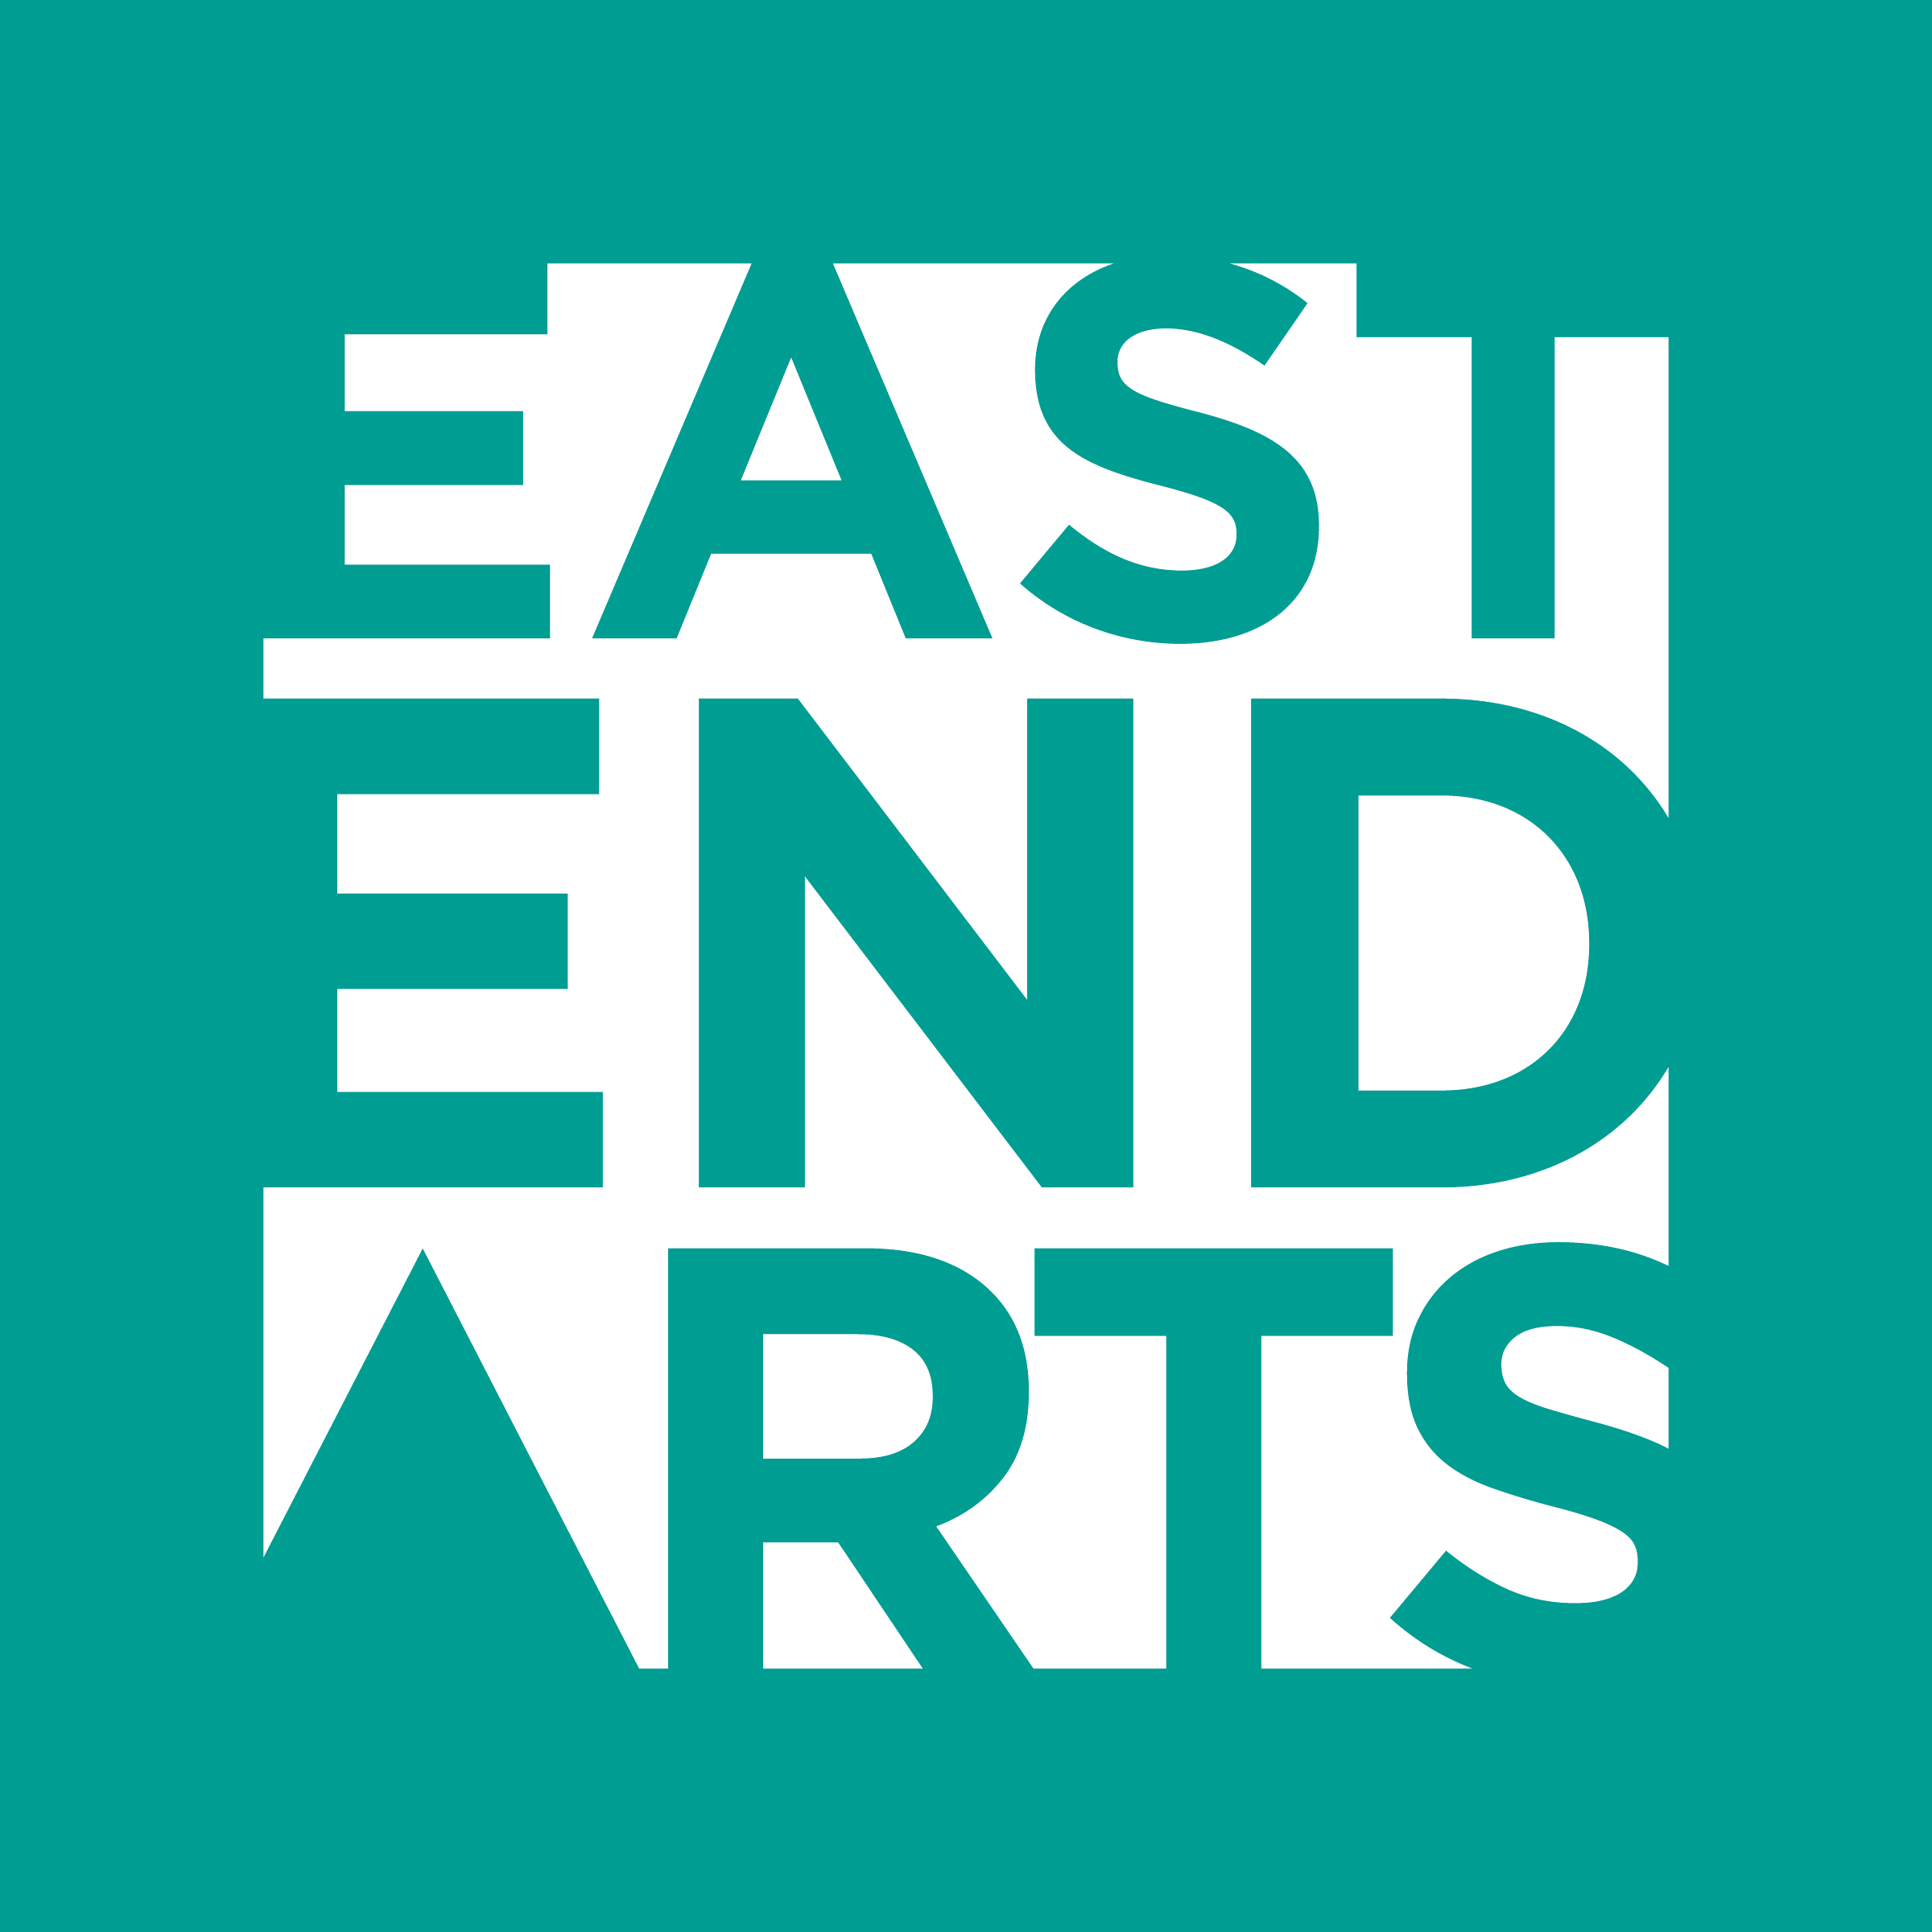 east end arts.png